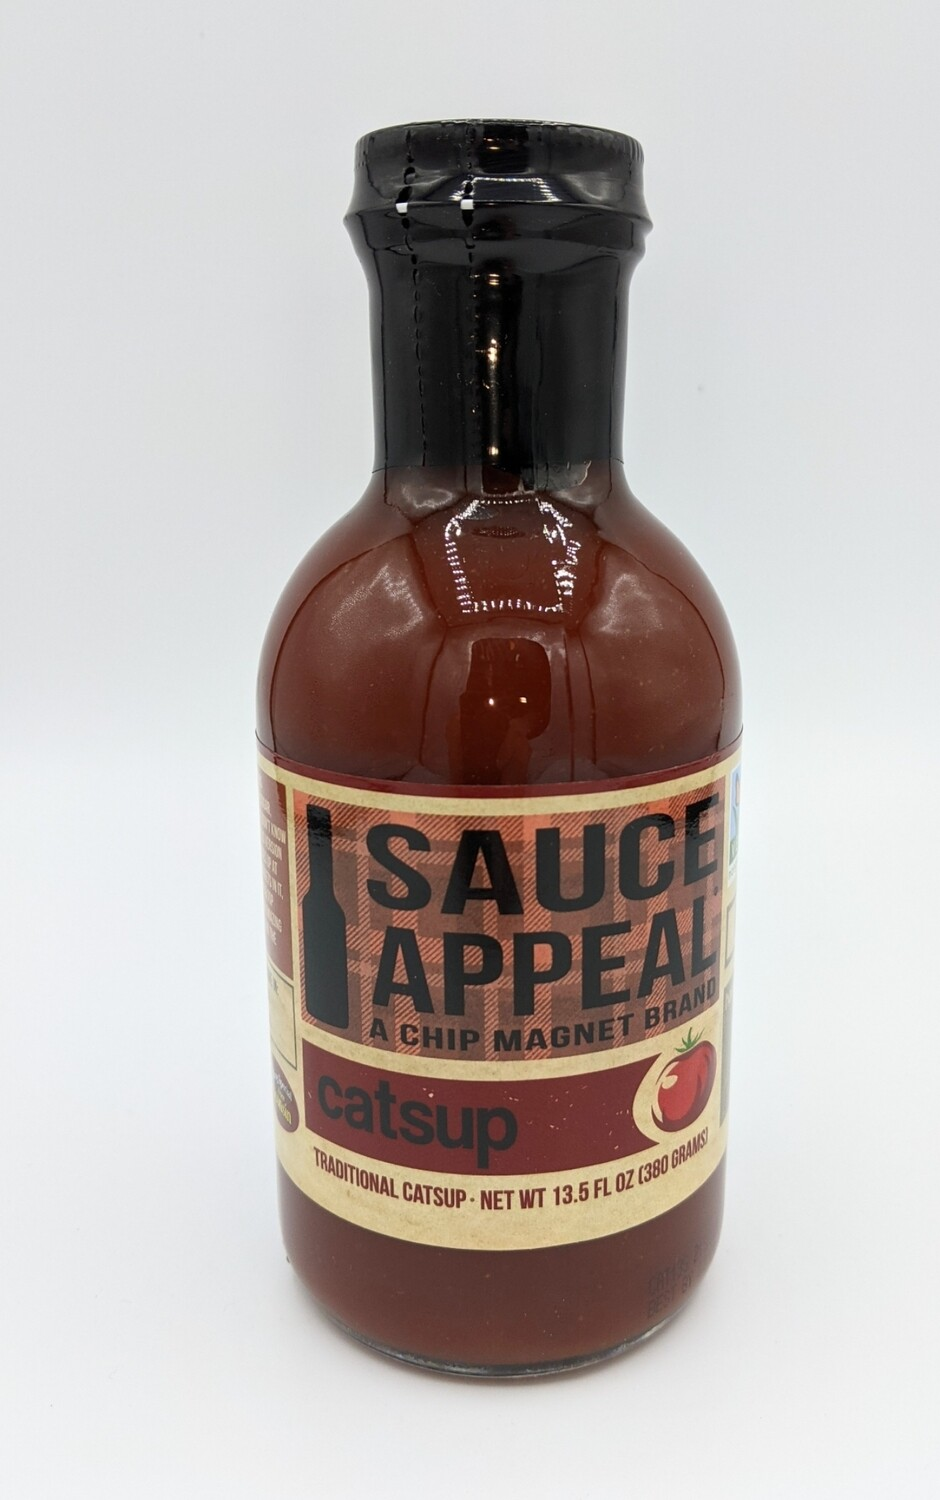 Catsup (Ketchup) - Sauce Appeal